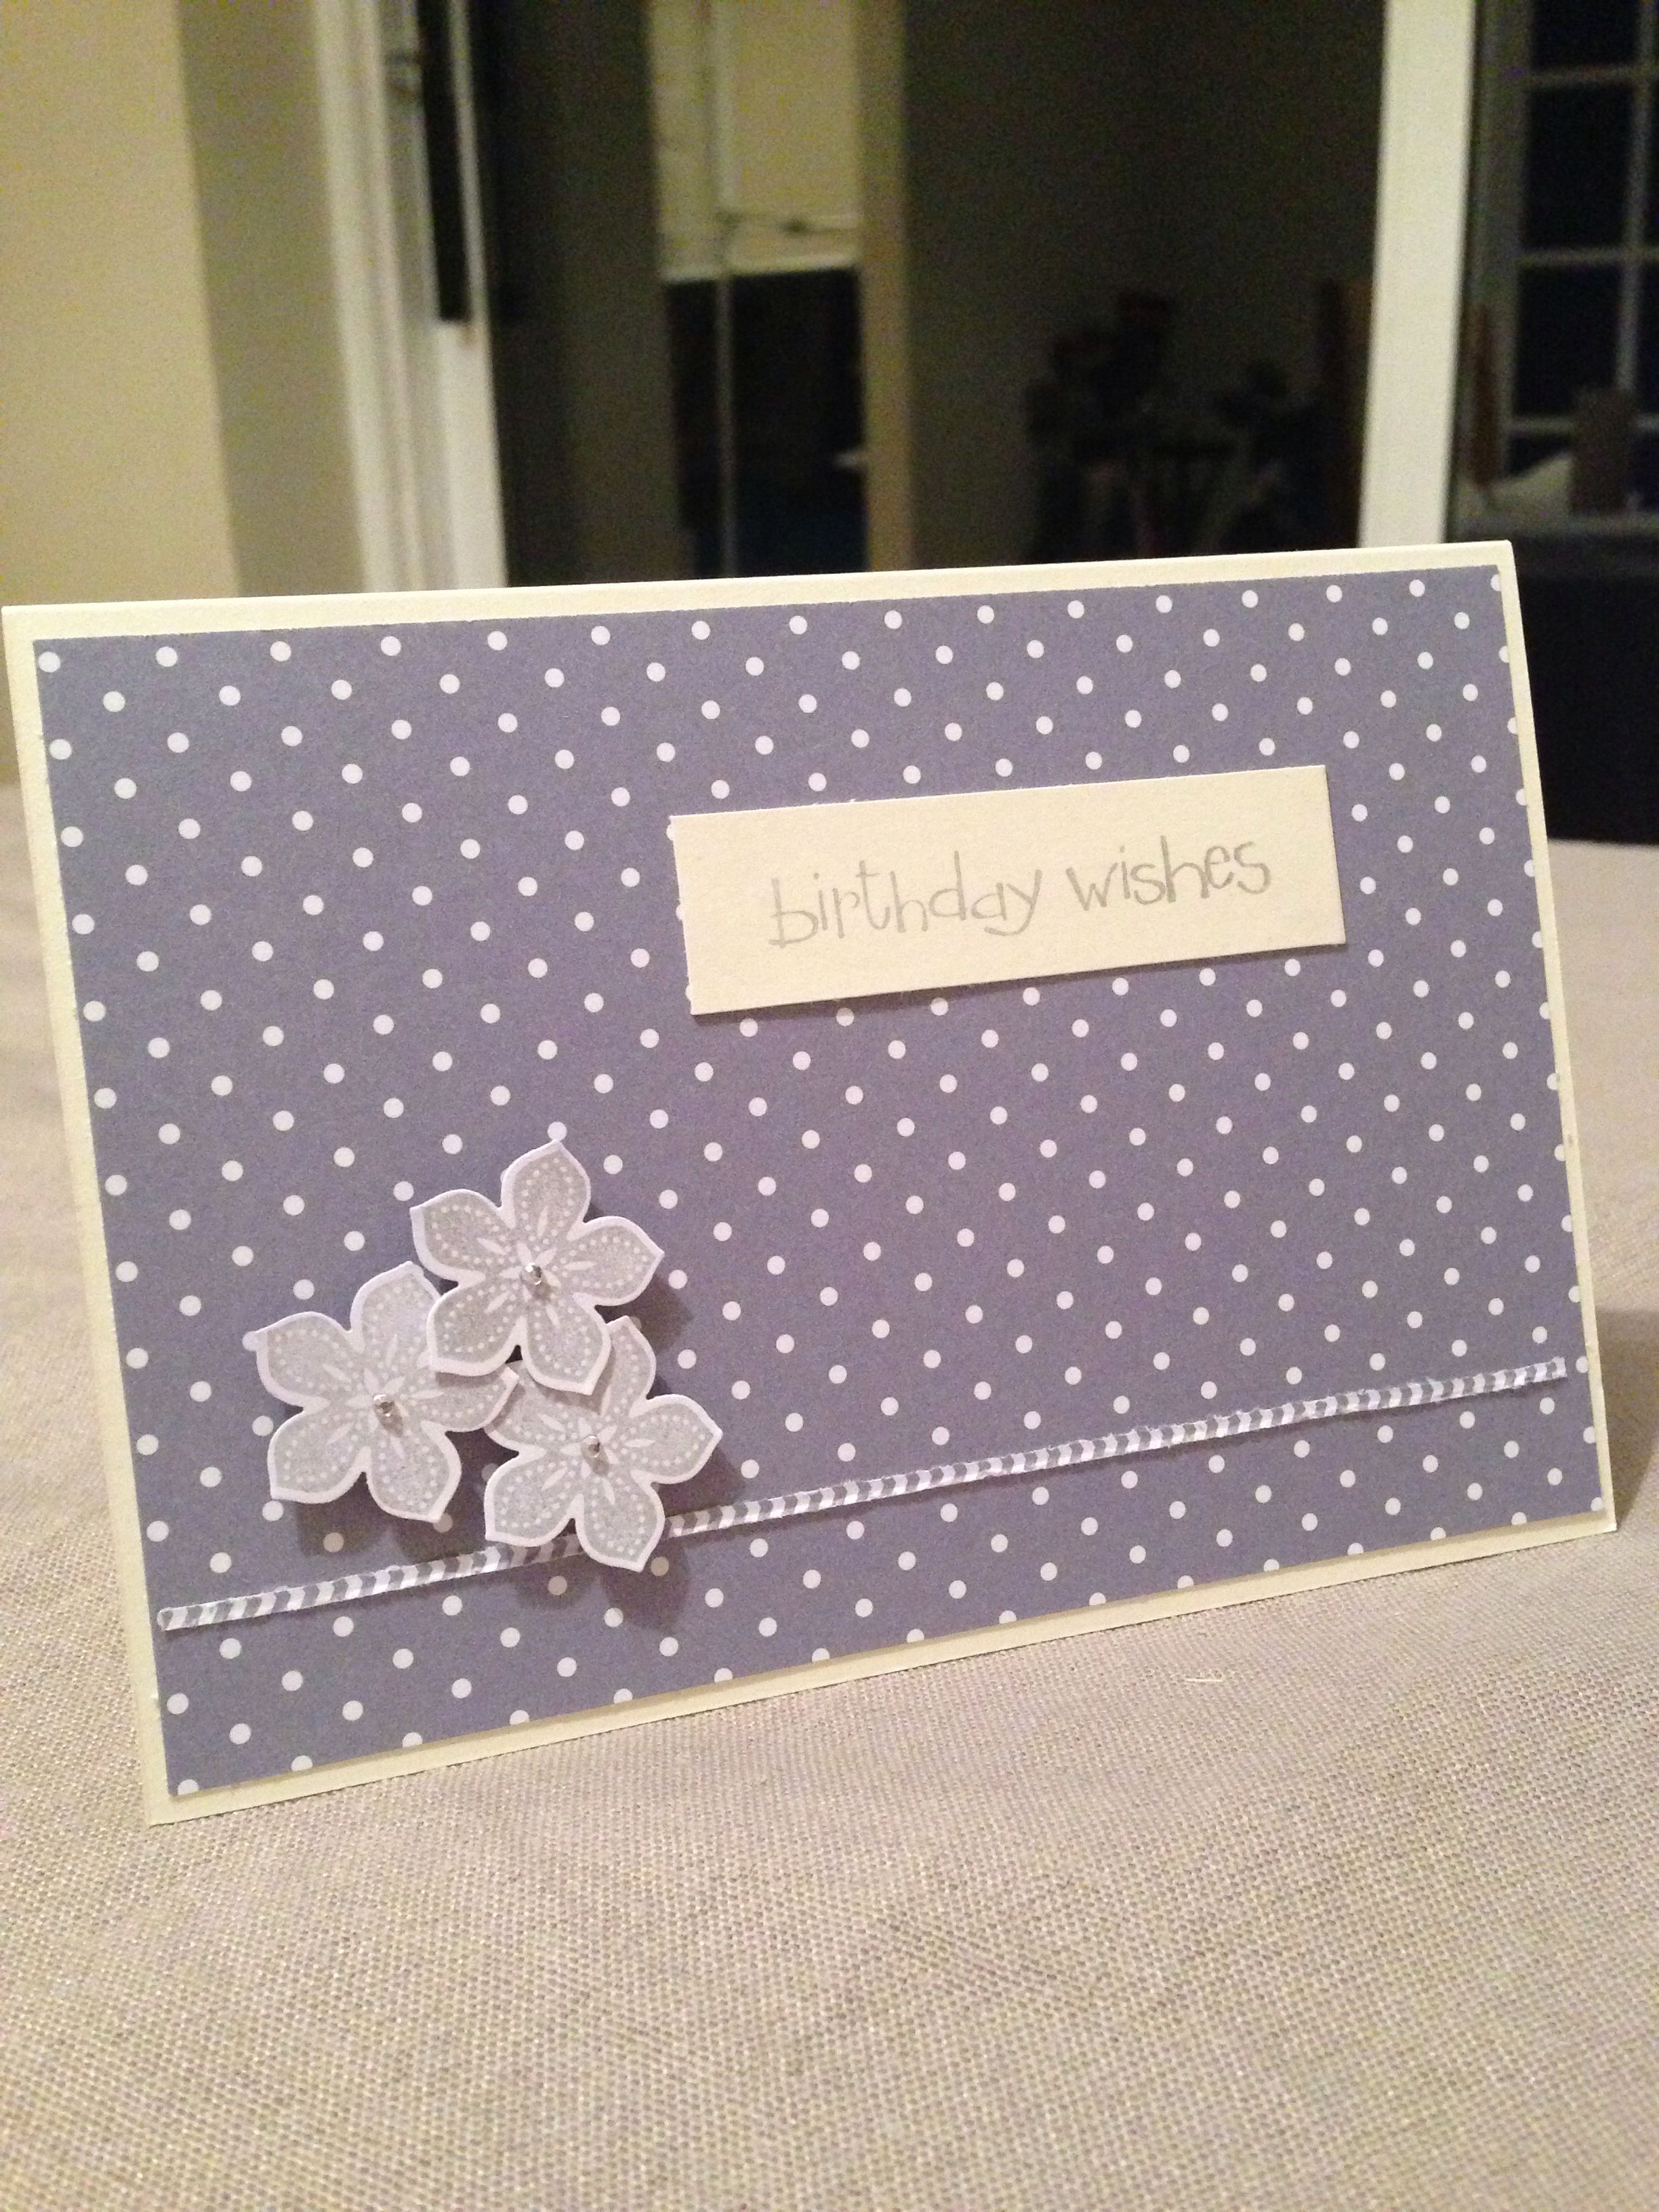 'Birthday wishes' Stampin Up / DSP / Petal punch